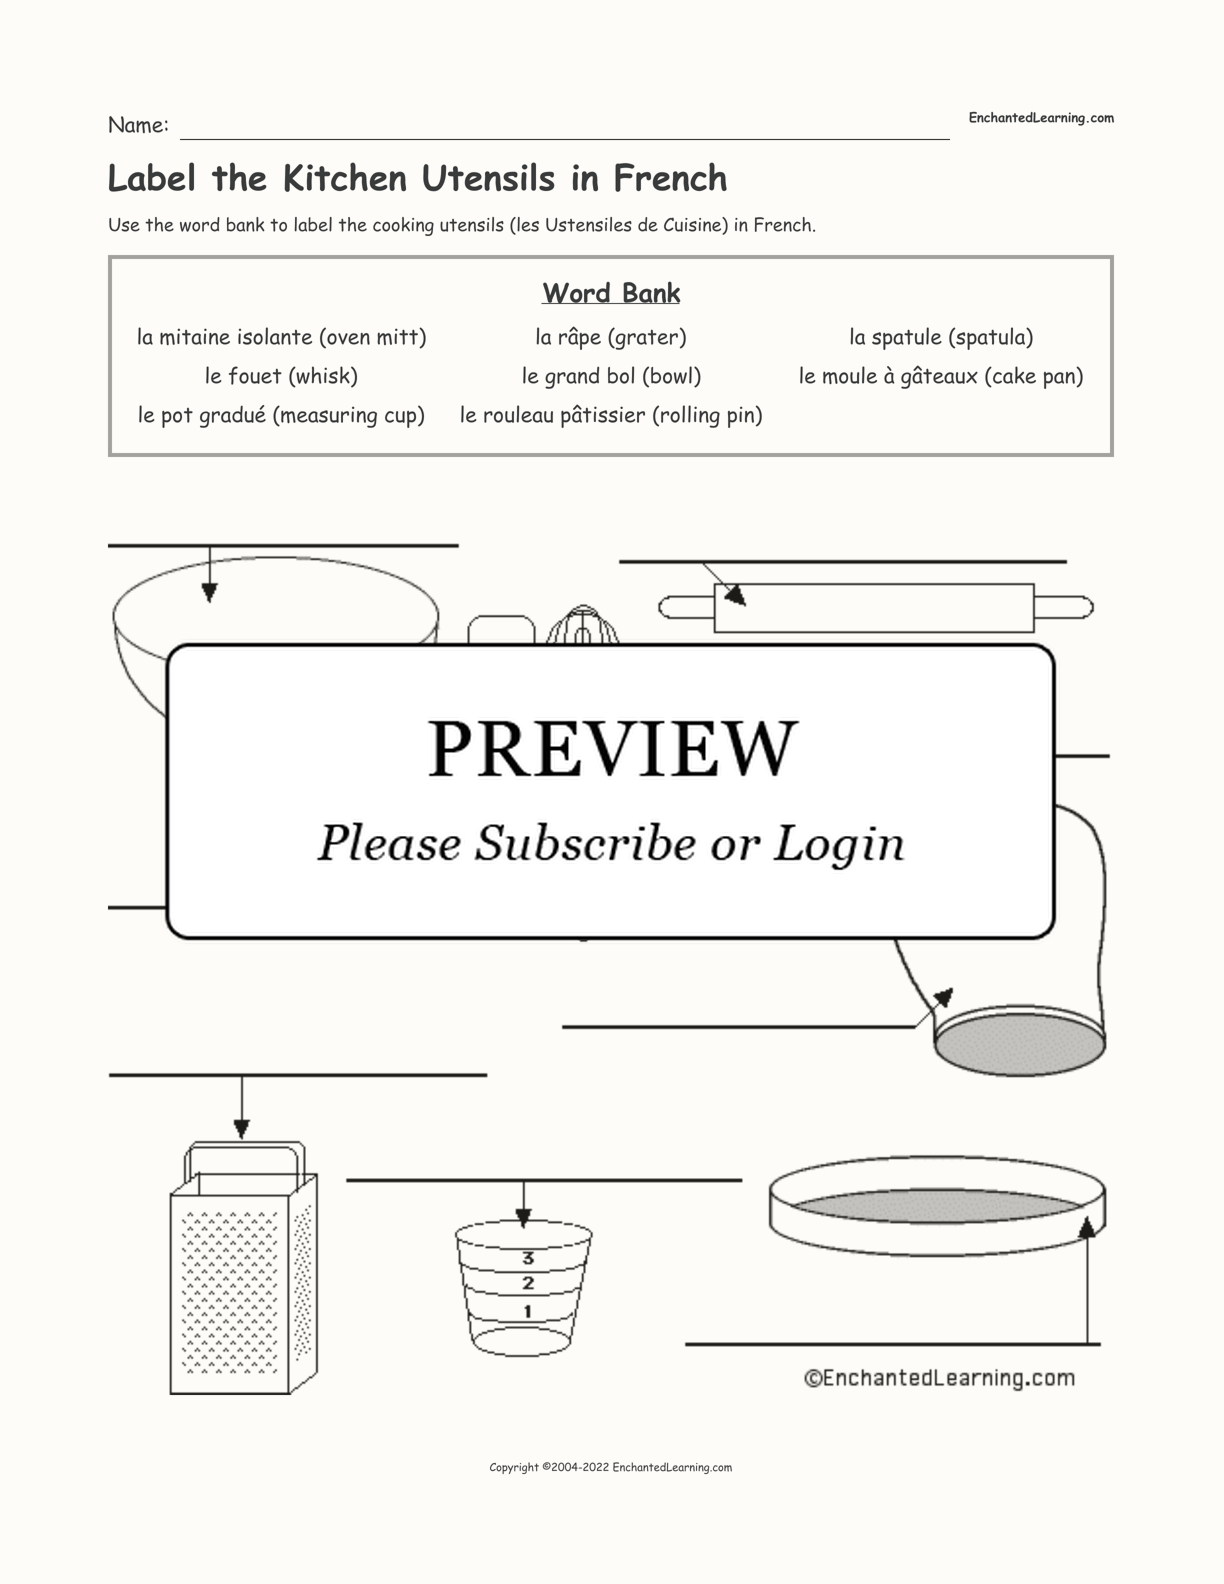 Label the Kitchen Utensils in French interactive worksheet page 1